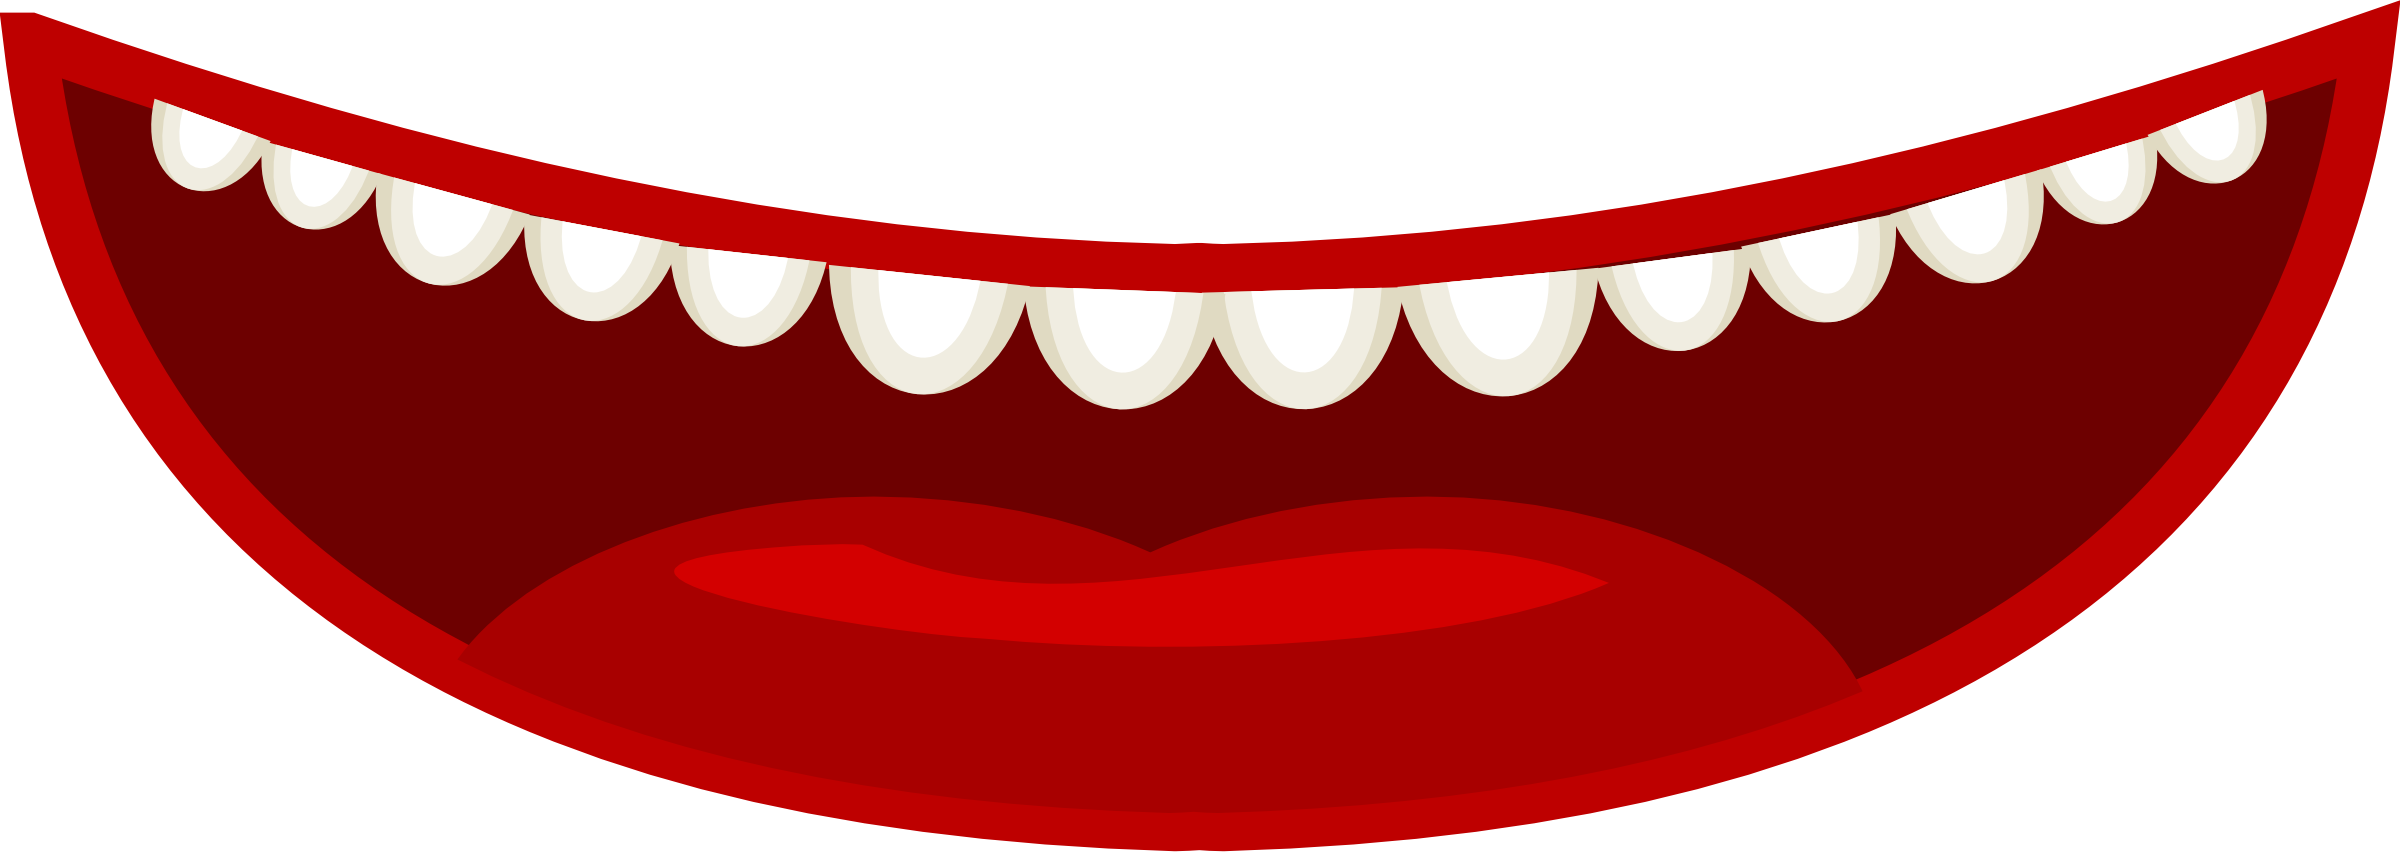 Monster clipart mouth open clipart.  collection of sad